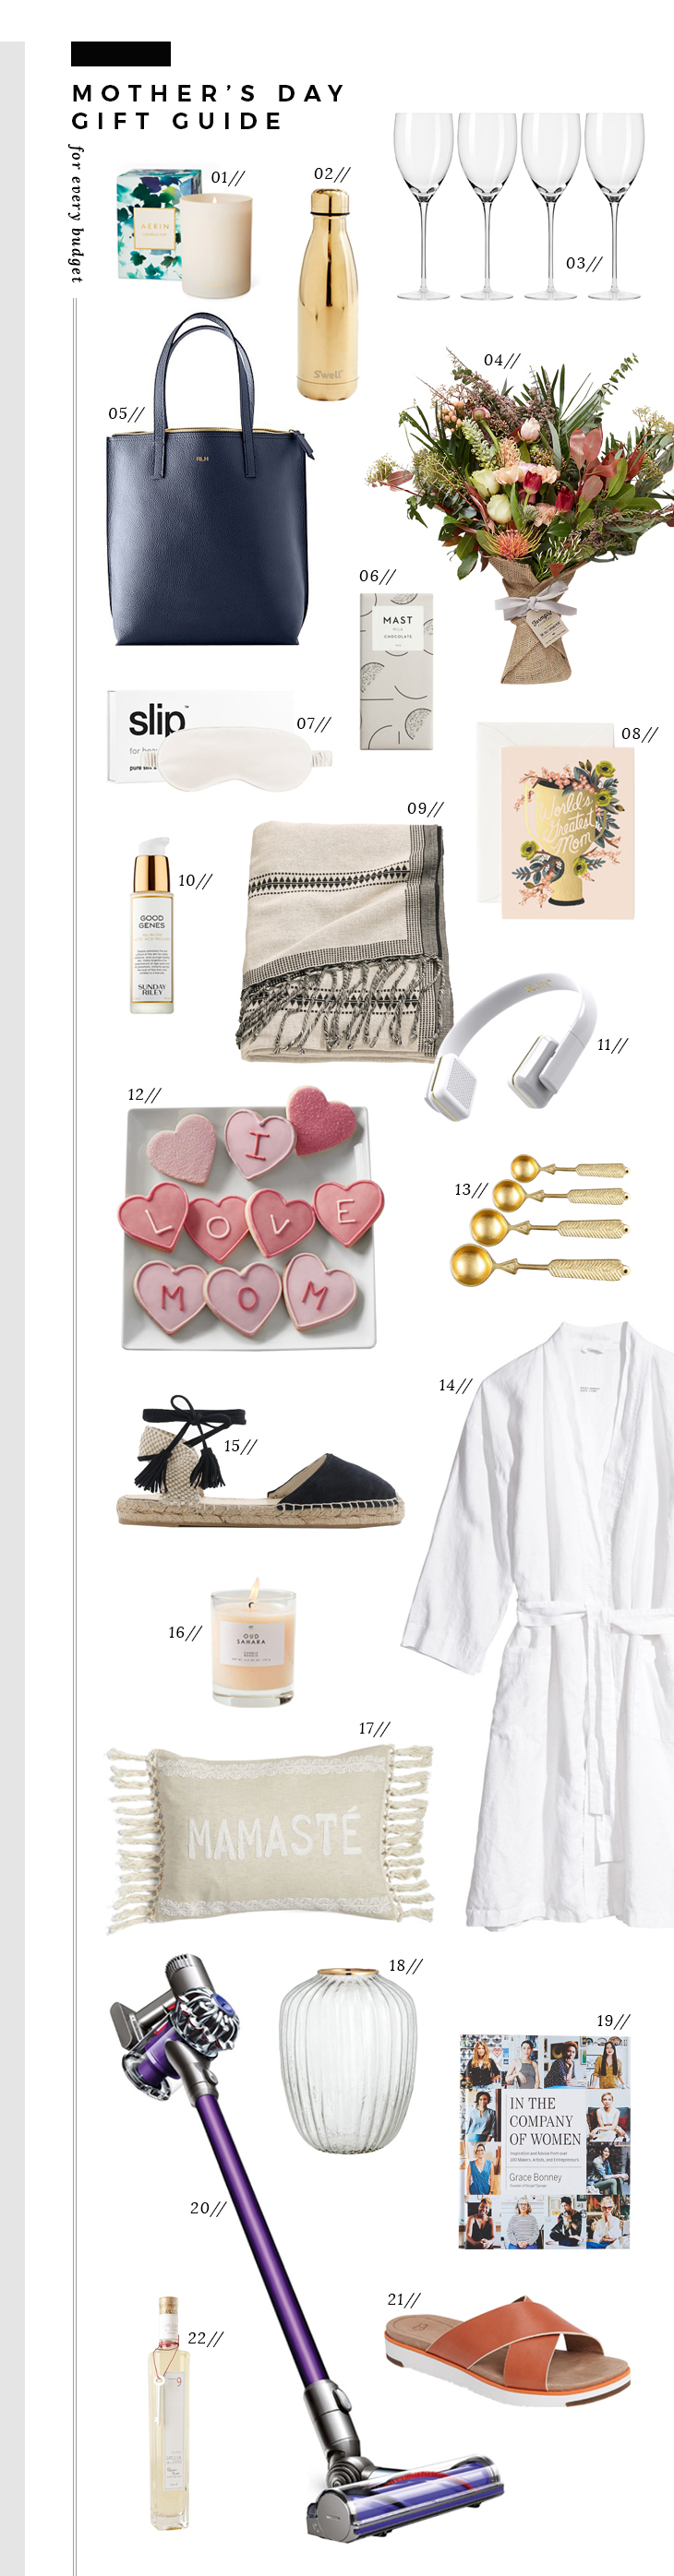 Awsome Mother's Day Gift Guide